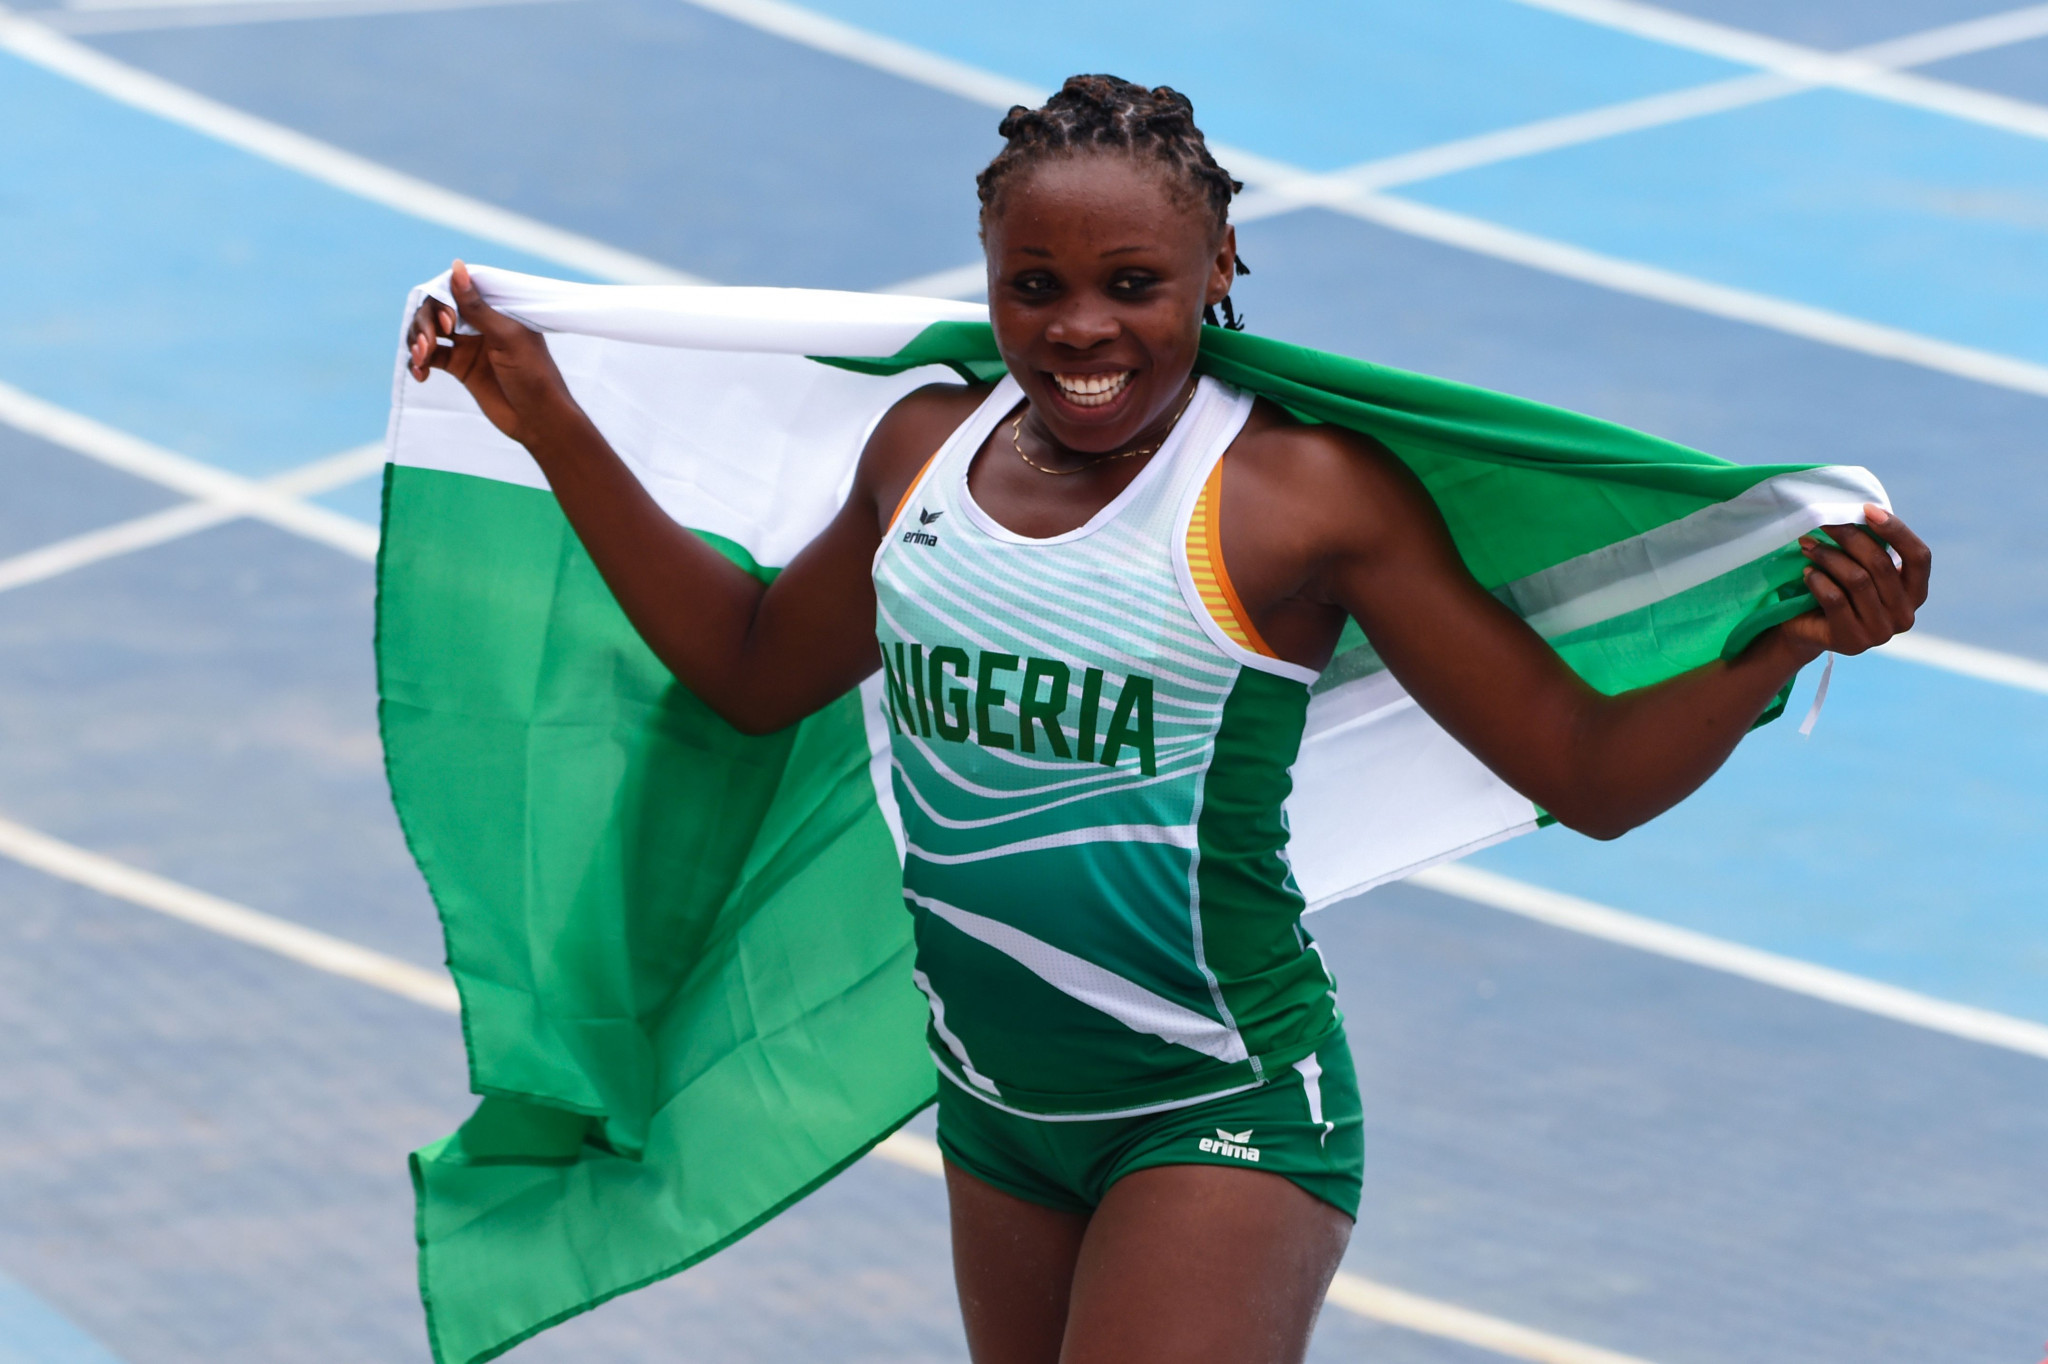 African Games triple jump champion Anigbata admits to nerves before gold